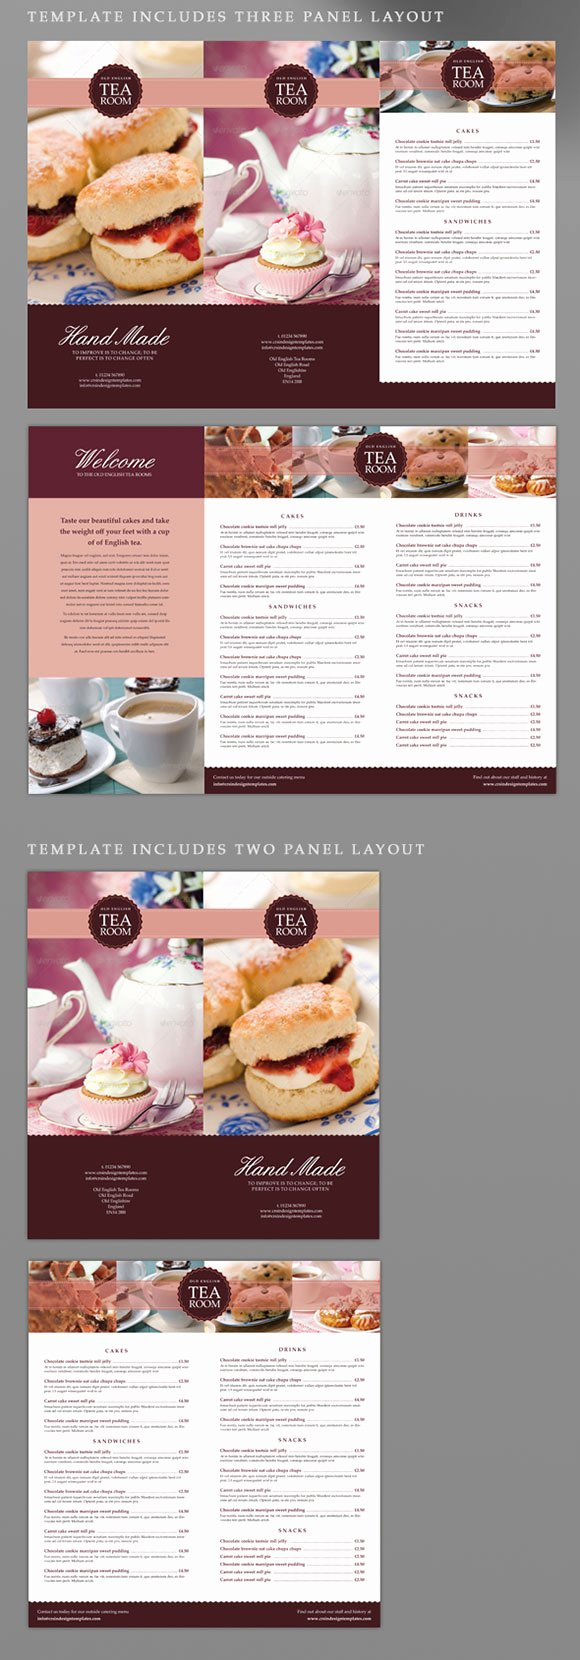 Indesign Menu Template Free New Tea Room Coffee Shop Indesign Menu Template Crs Indesign